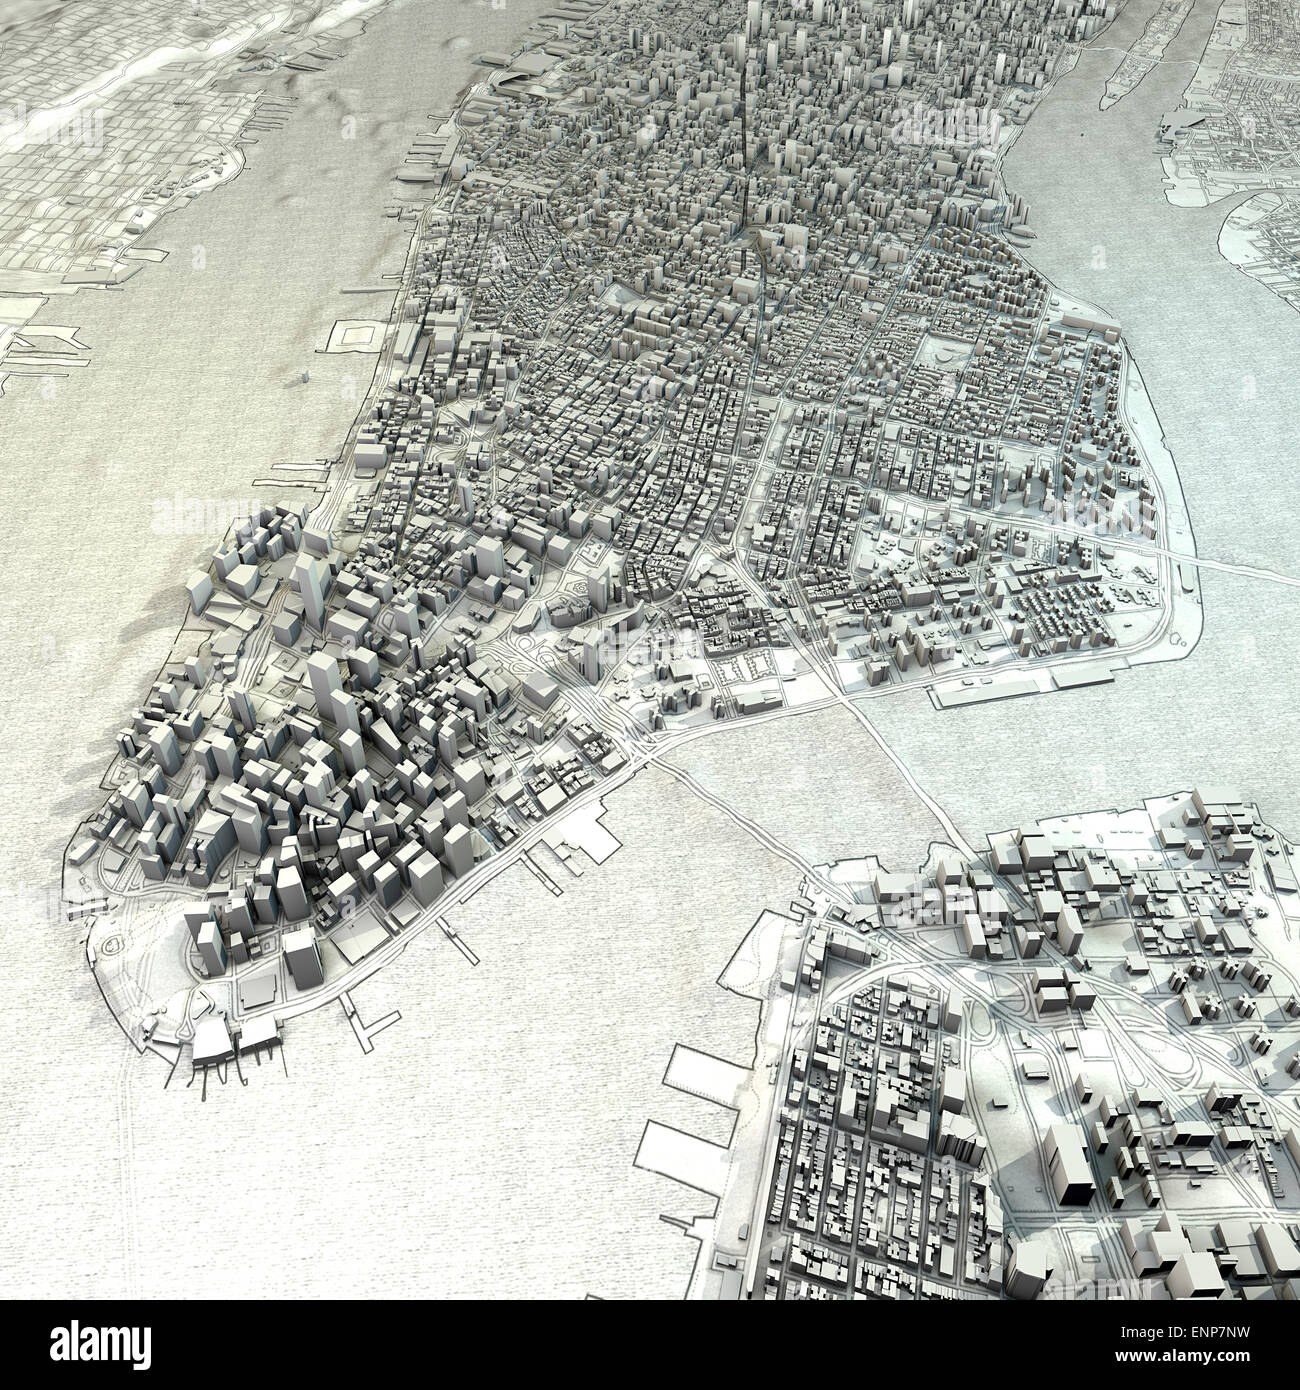 D New York Map Illustration Stock Photo Royalty Free Image - New york map in 3d